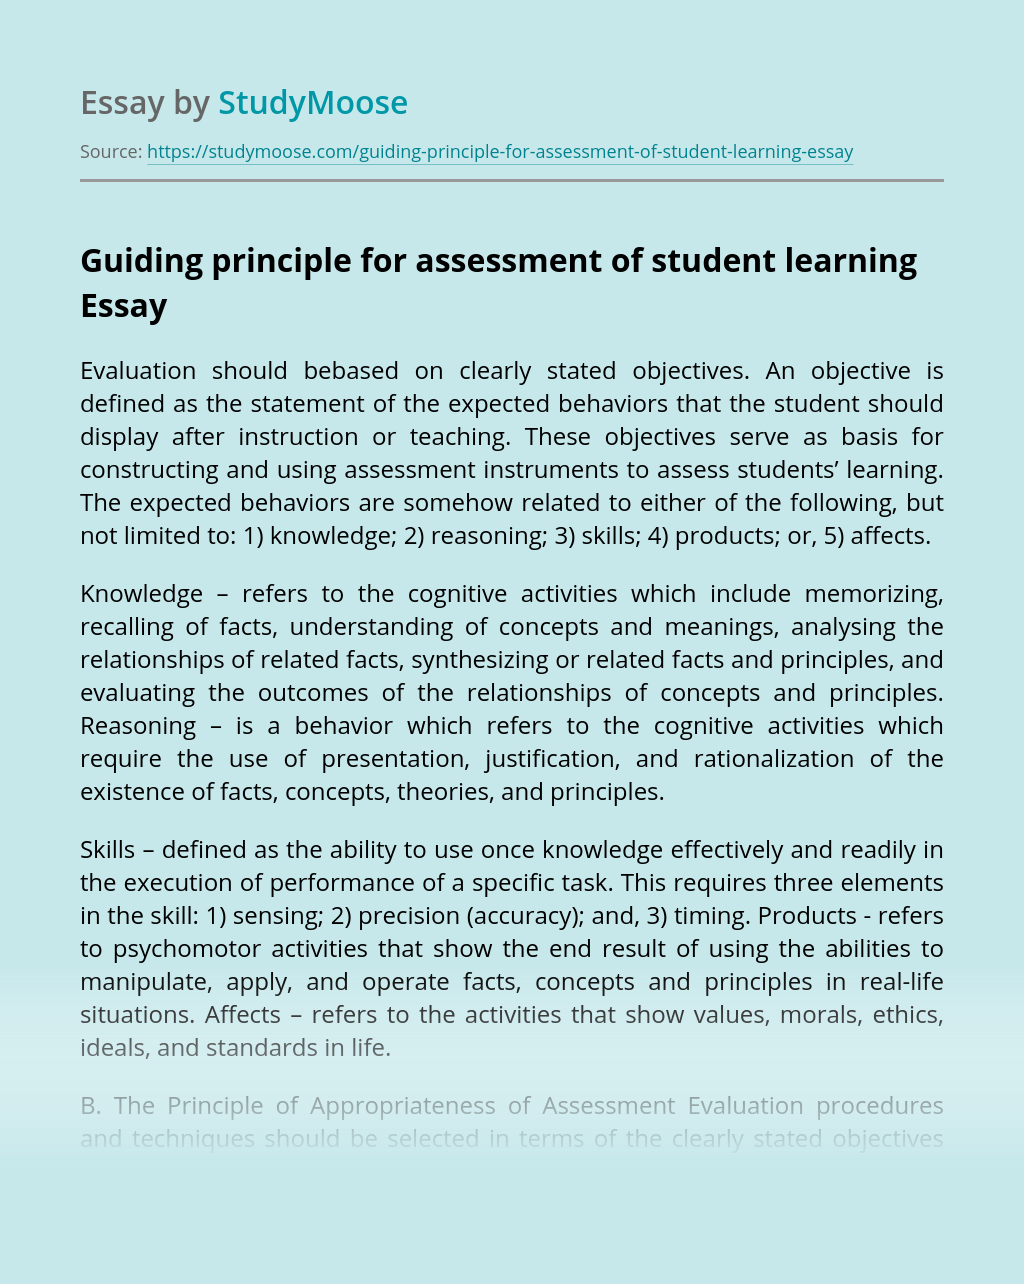 Guiding principle for assessment of student learning